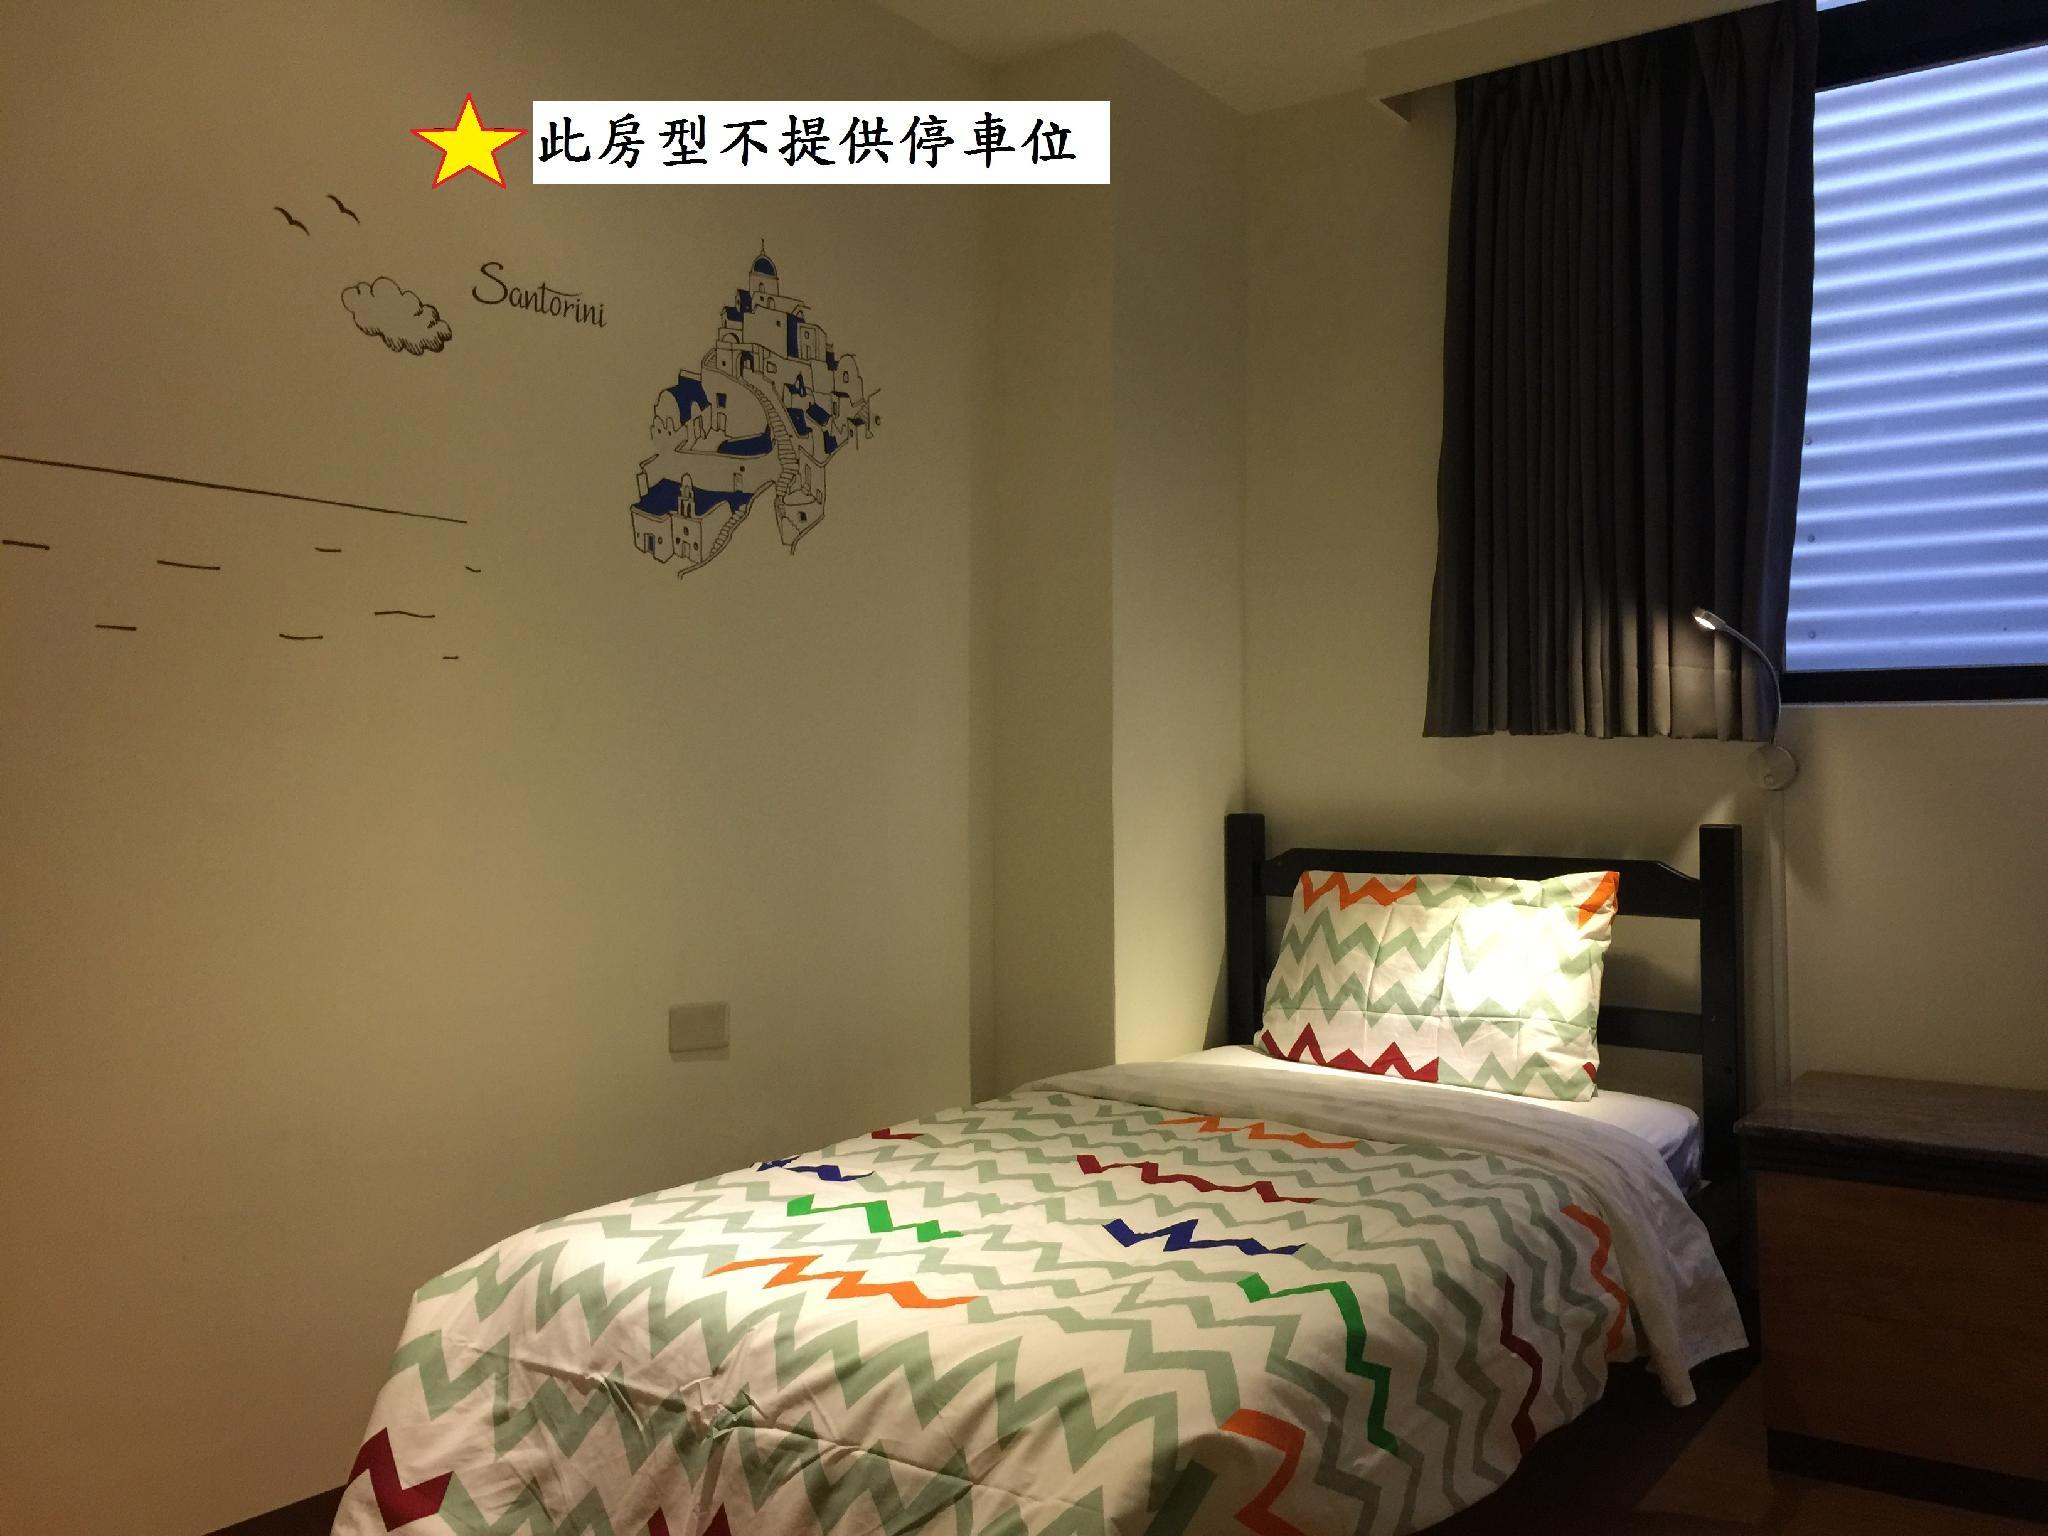 【限女性】單人房 - 需共用浴室 (Female Single Room with Shared Bathroom)